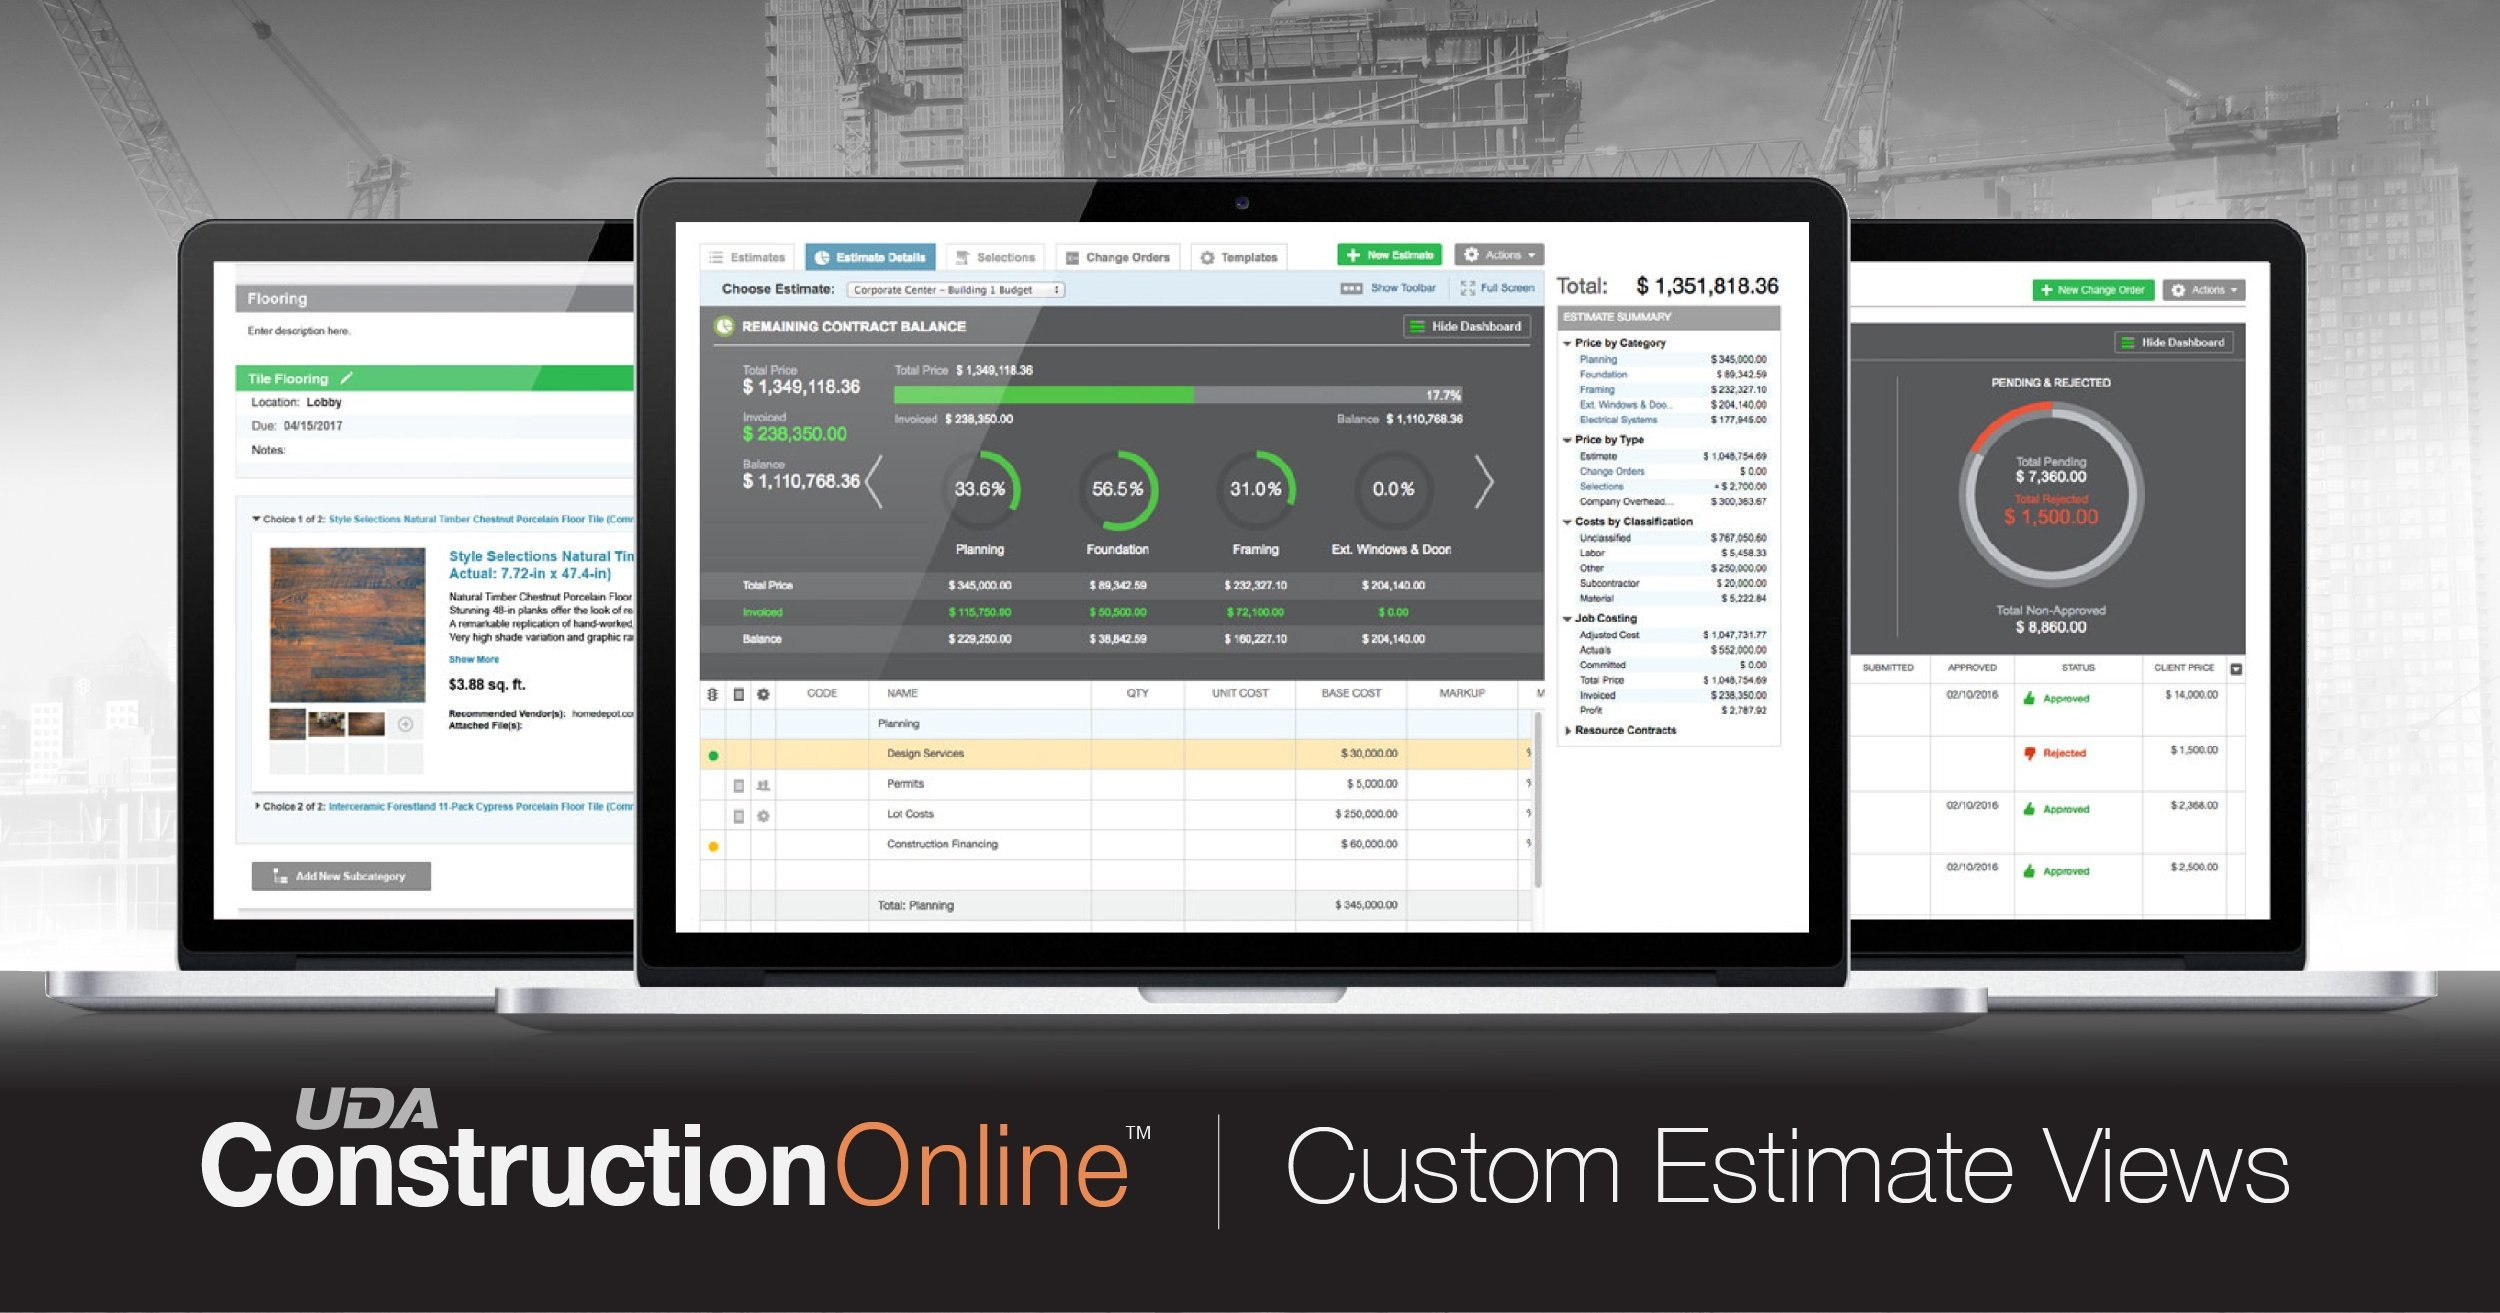 Better View of Project Job Costing Available with New Custom Estimate Options in ConstructionOnline